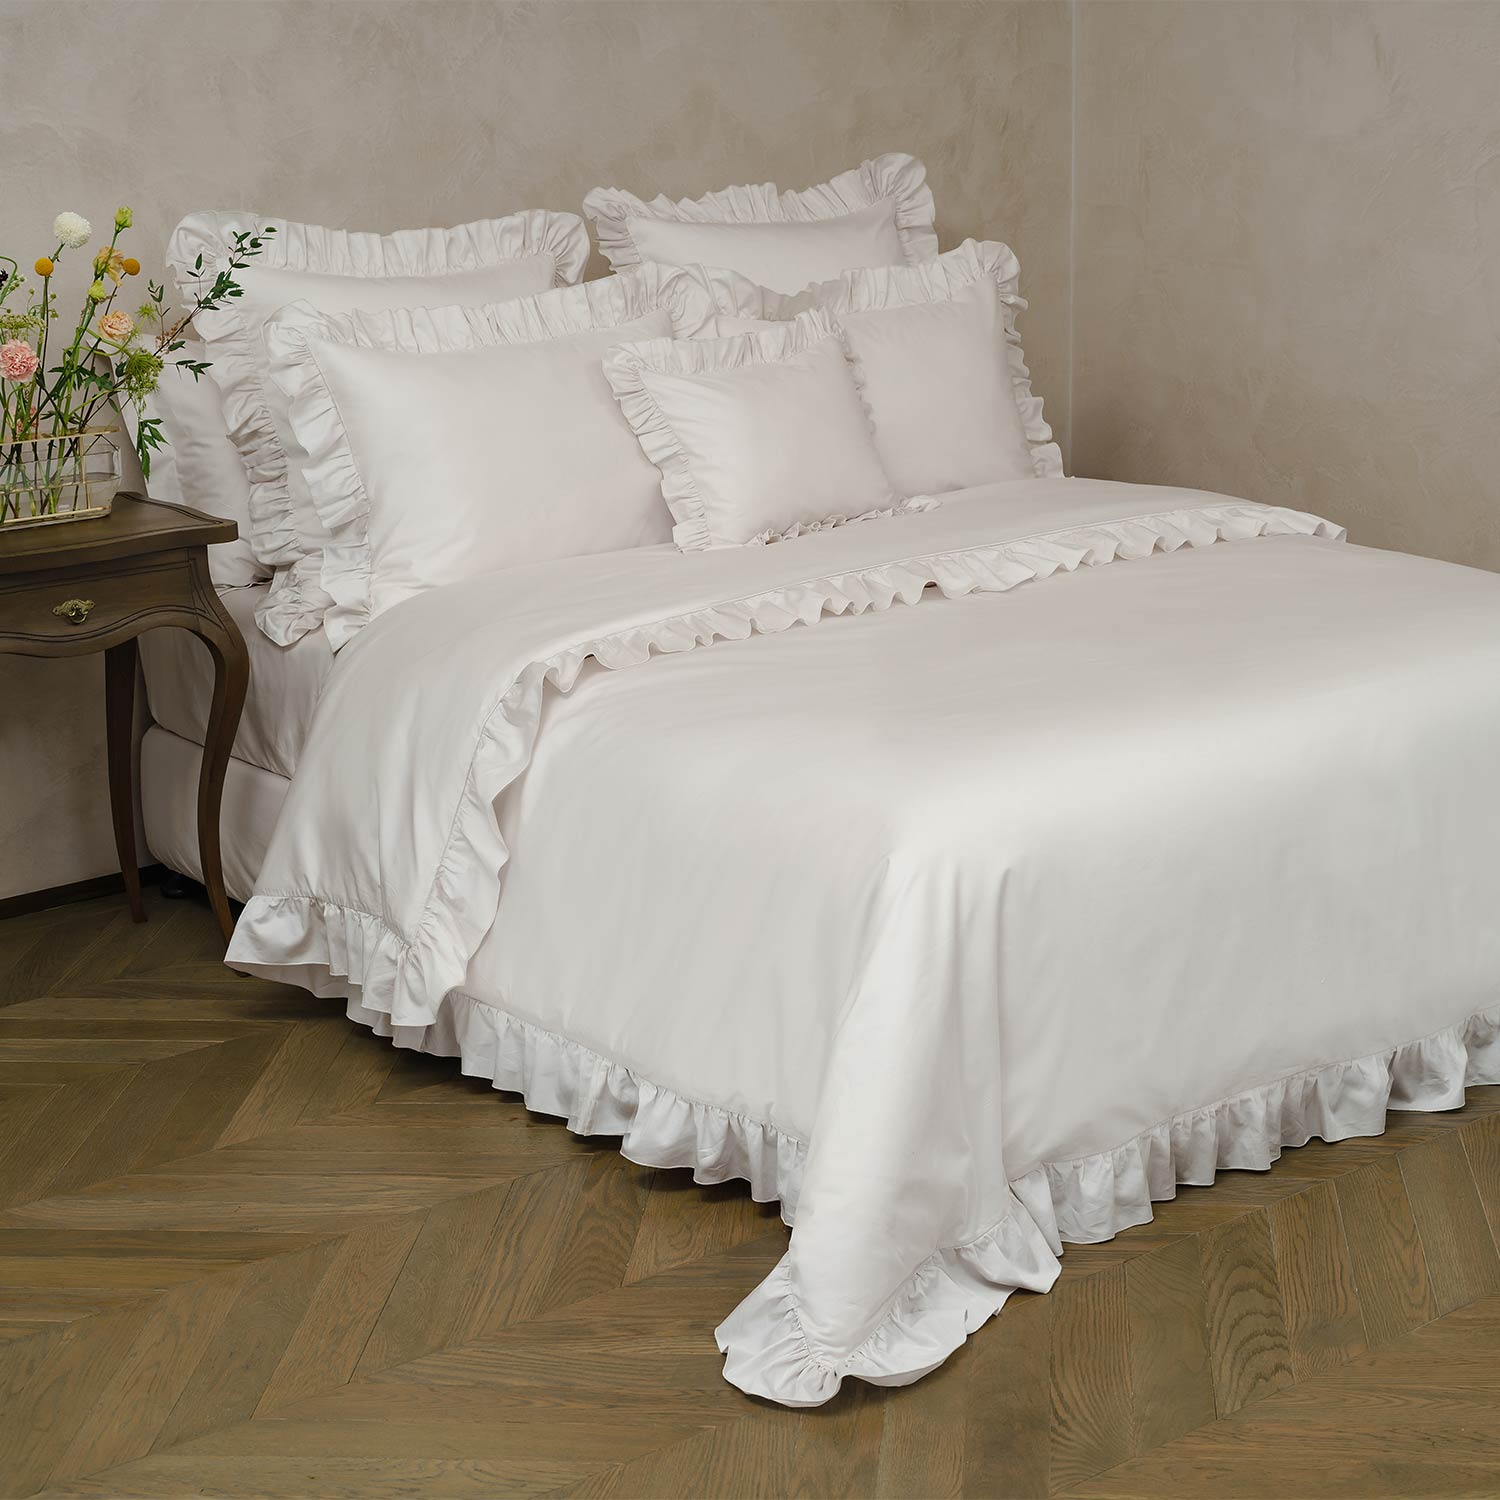 Frou Frou Pair of Cushion Covers